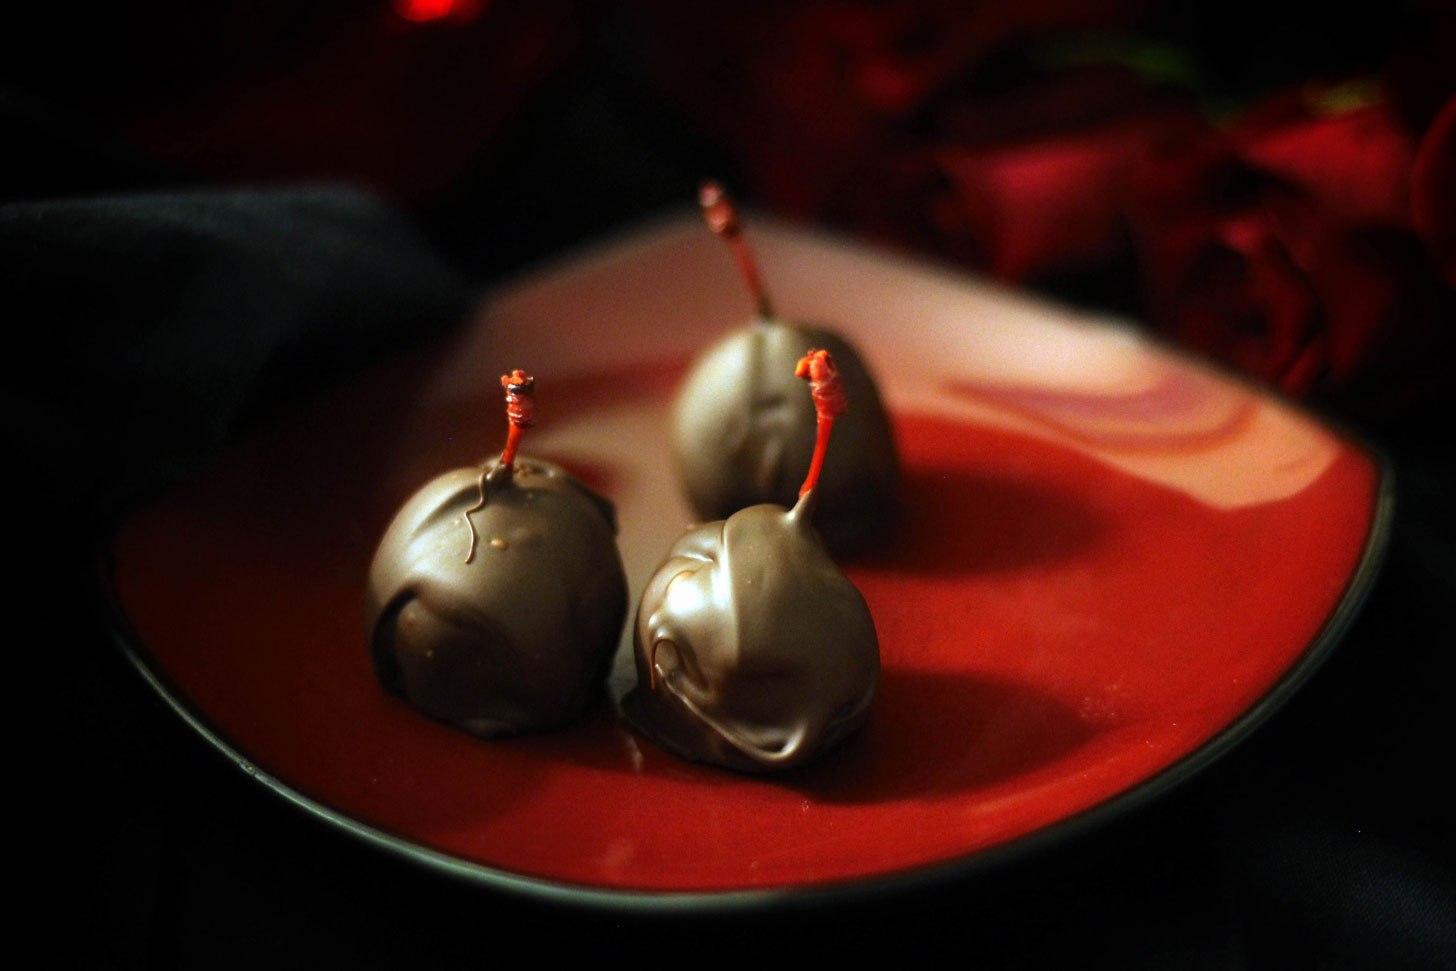 EASY & decadent chocolate and marzipan covered cherries. #vegan #glutenfree #plantbased #dessert #candy #chocolate #cherry #marzipan